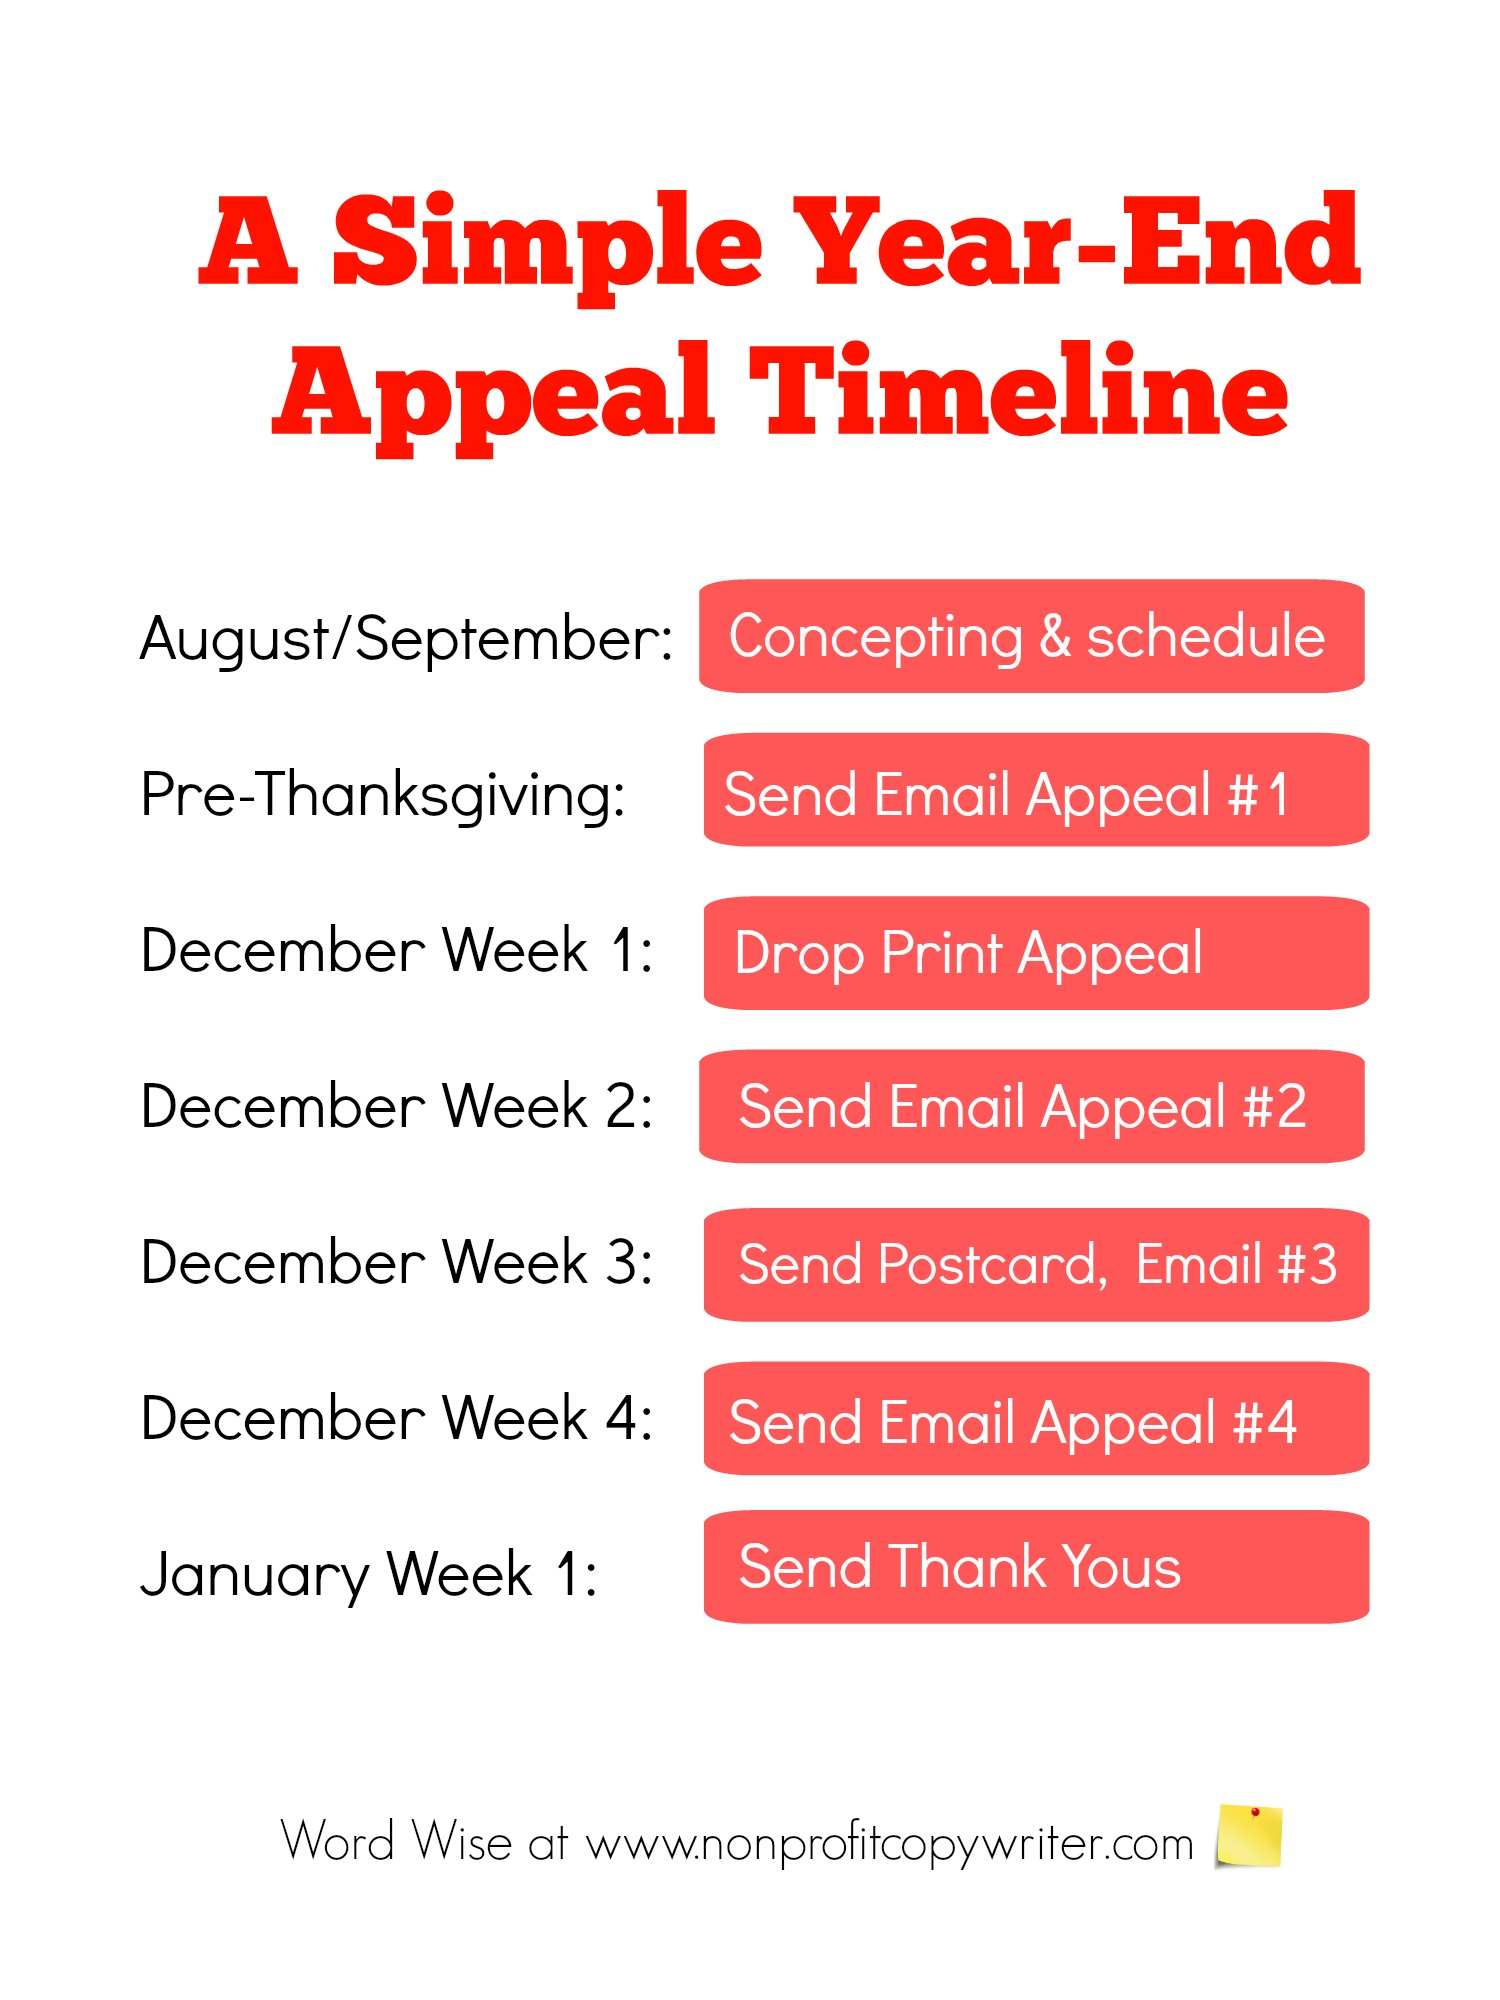 A simple year-end appeal timeline with Word Wise at Nonprofit Copywriter